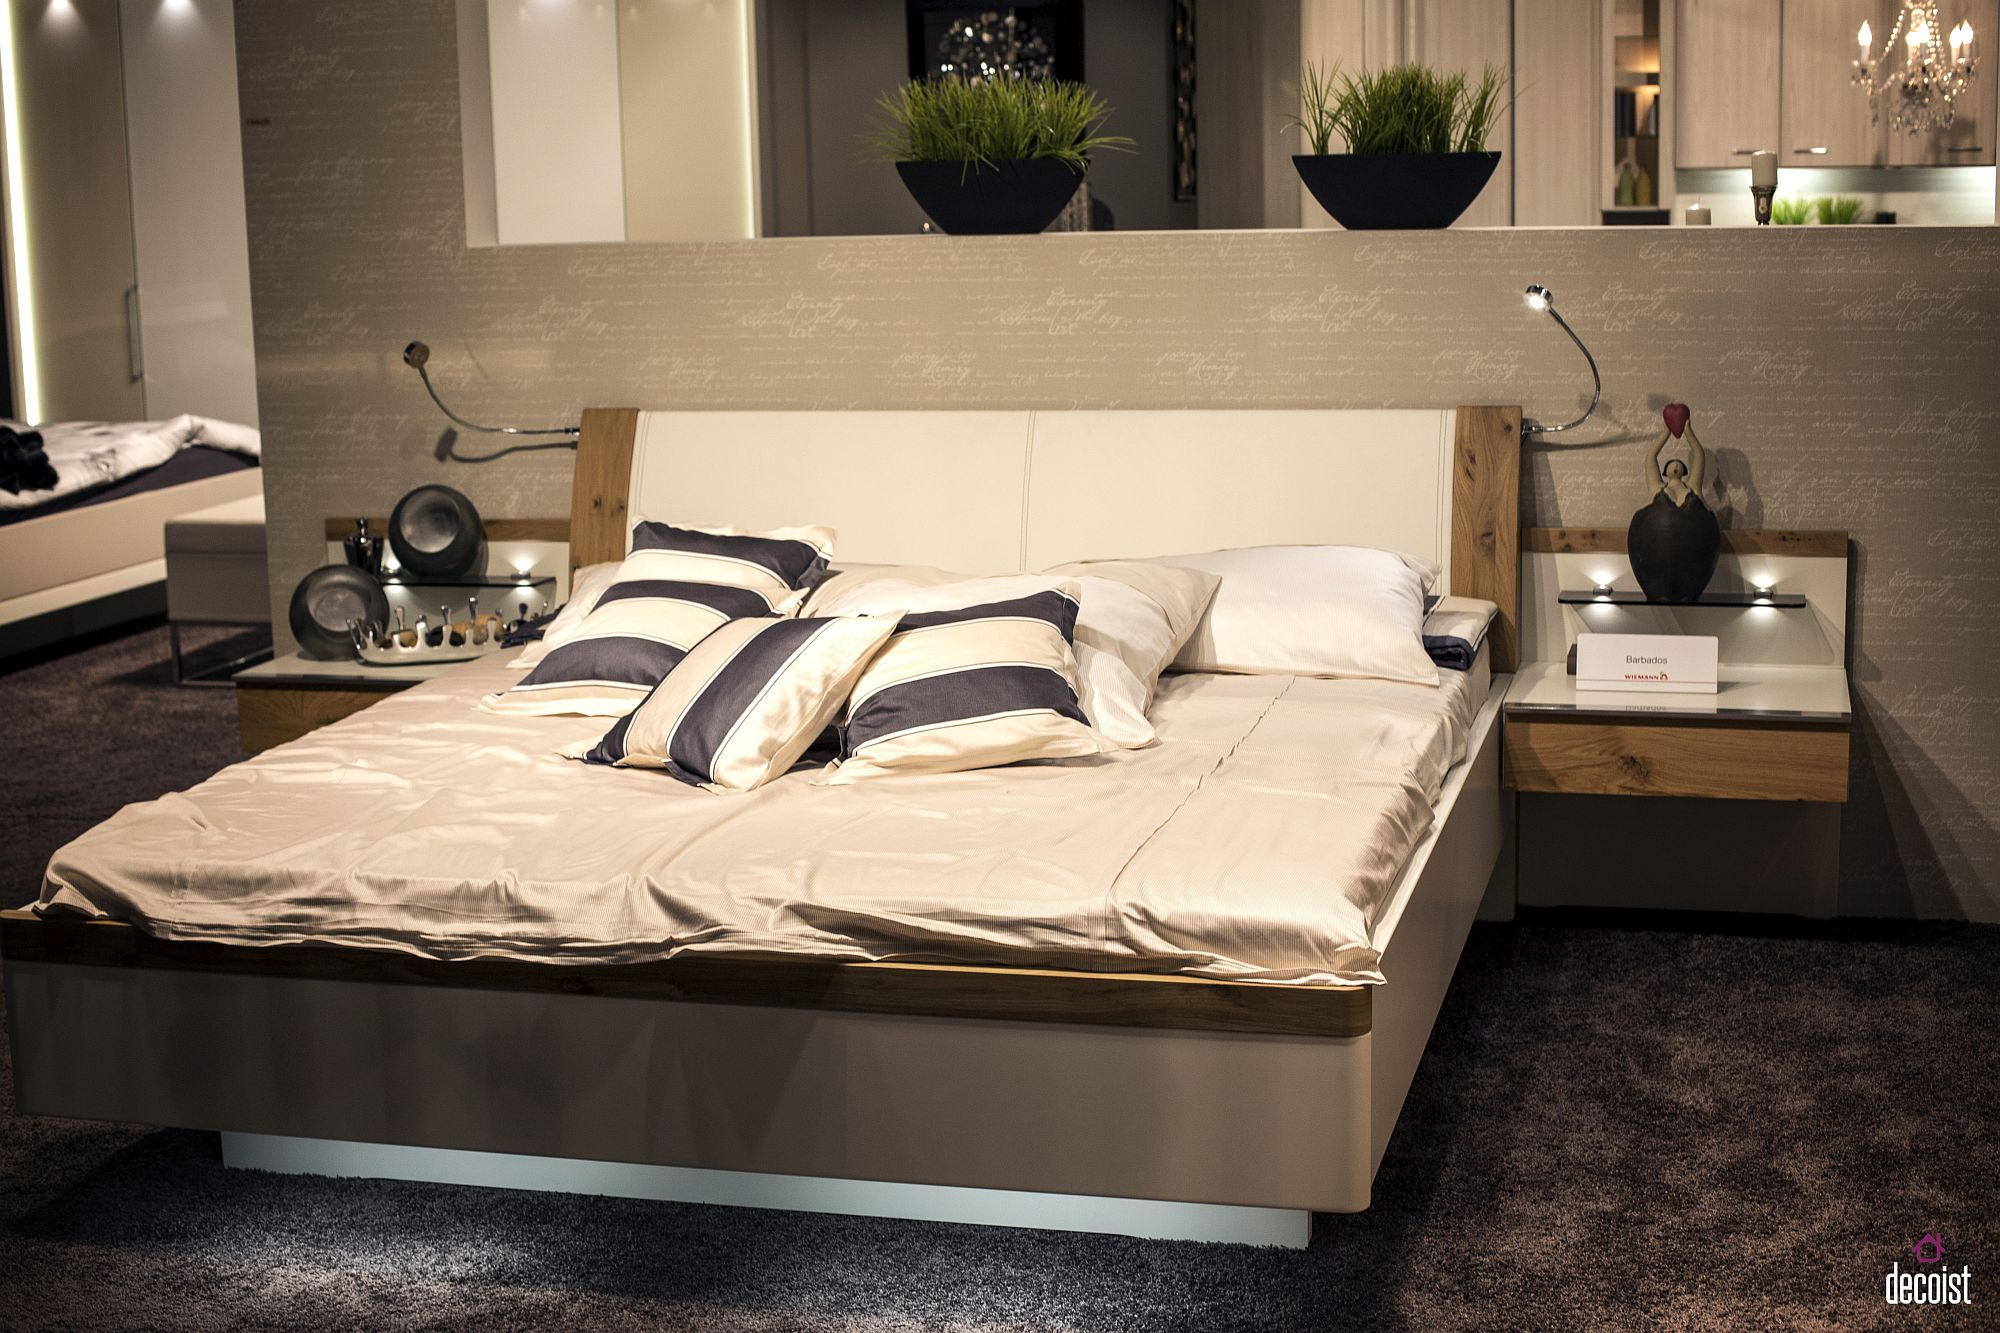 Ultra-slim nightstand with smart lighting and a single drawer provides everything you need